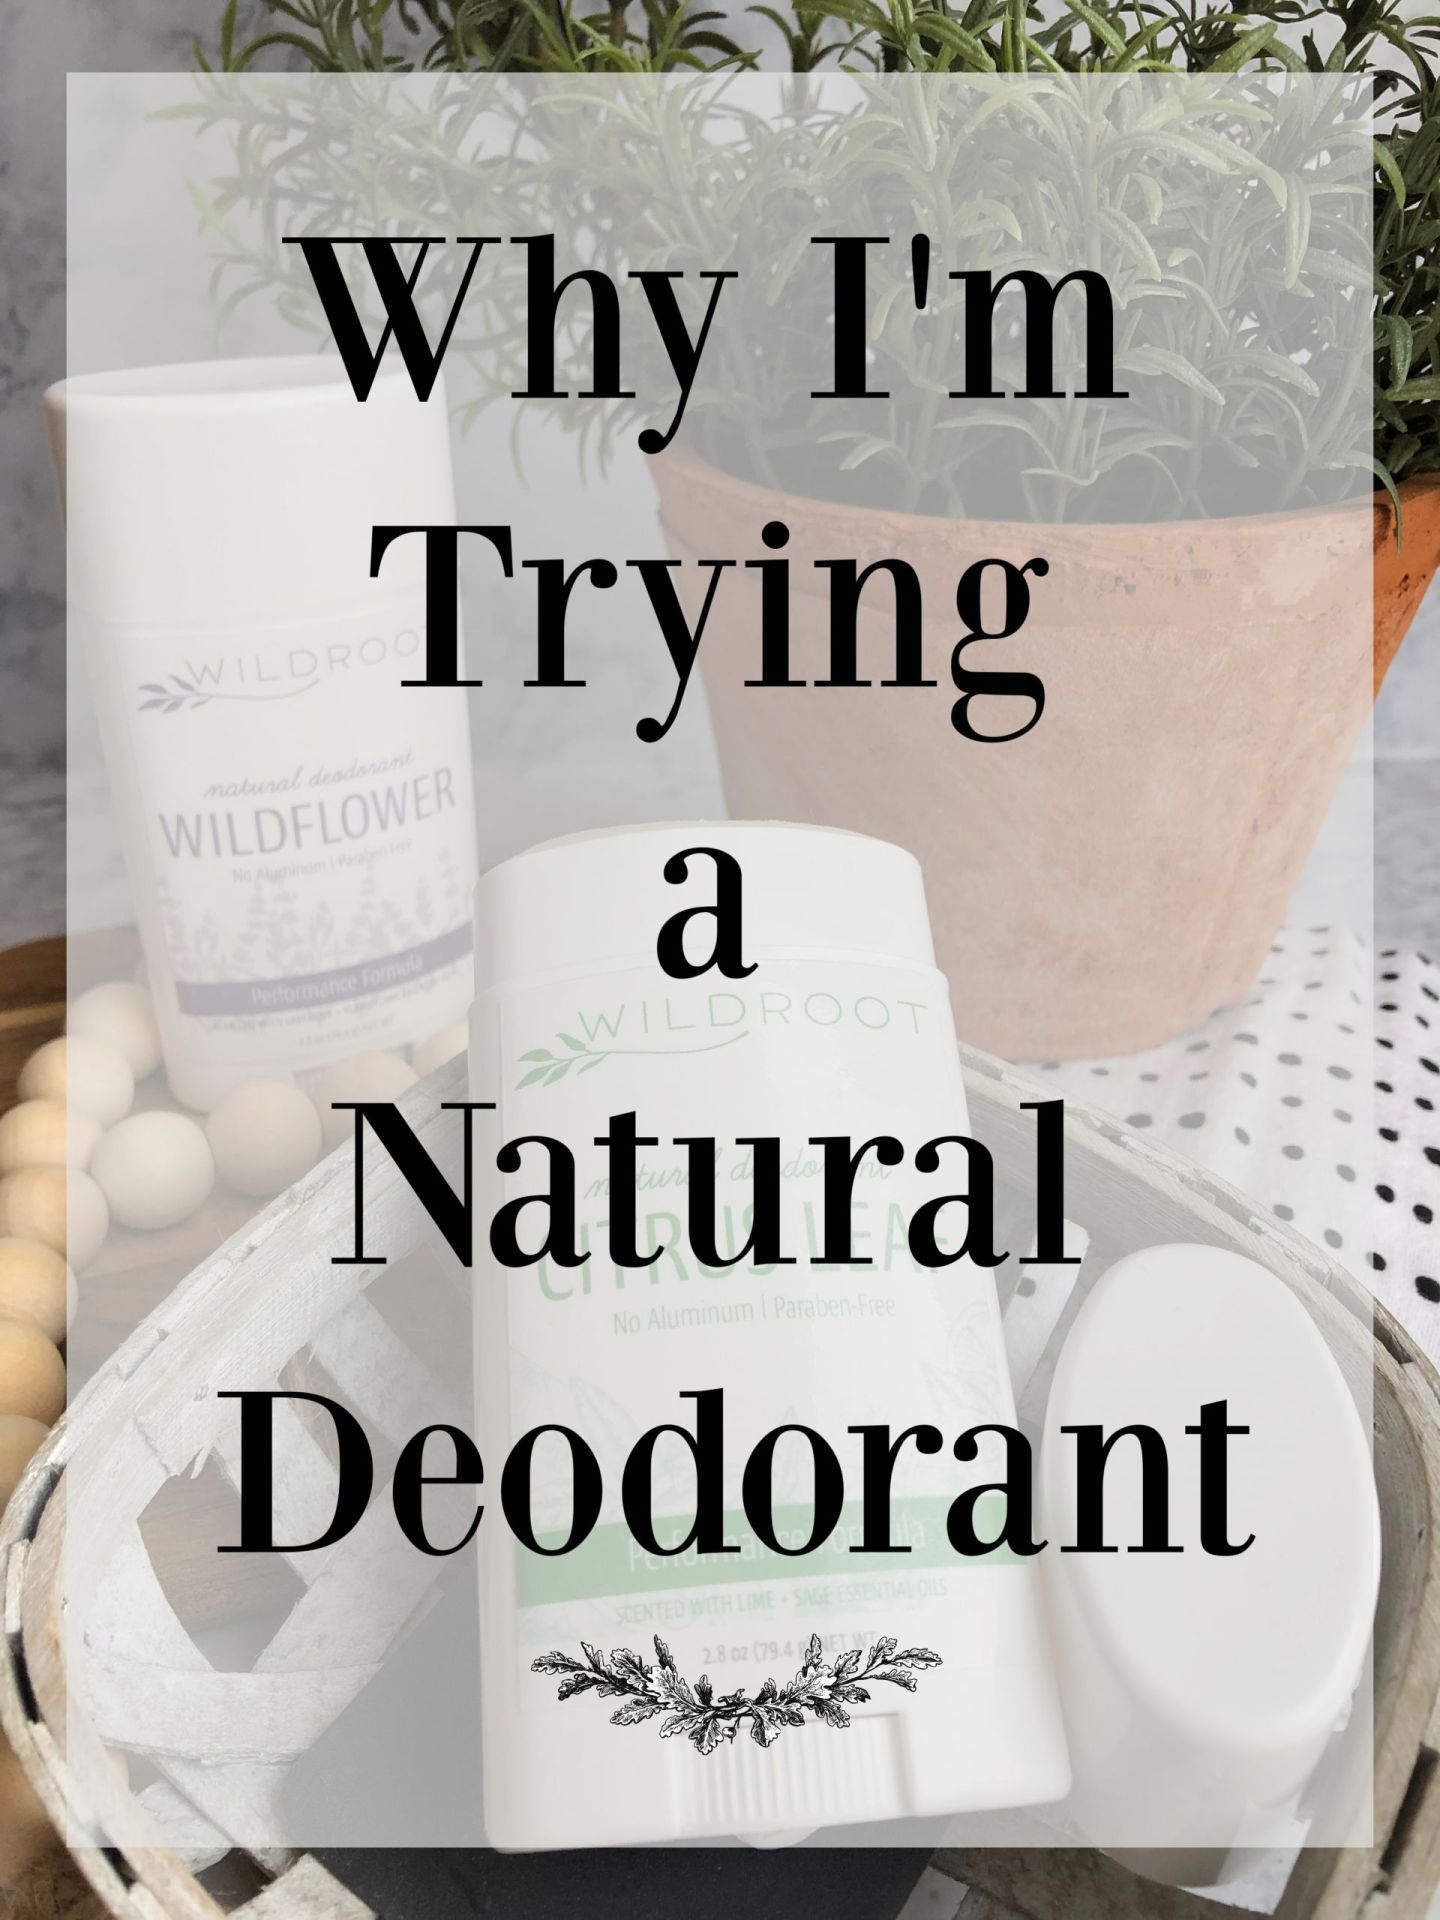 Why I'm Trying a Natural Deodorant